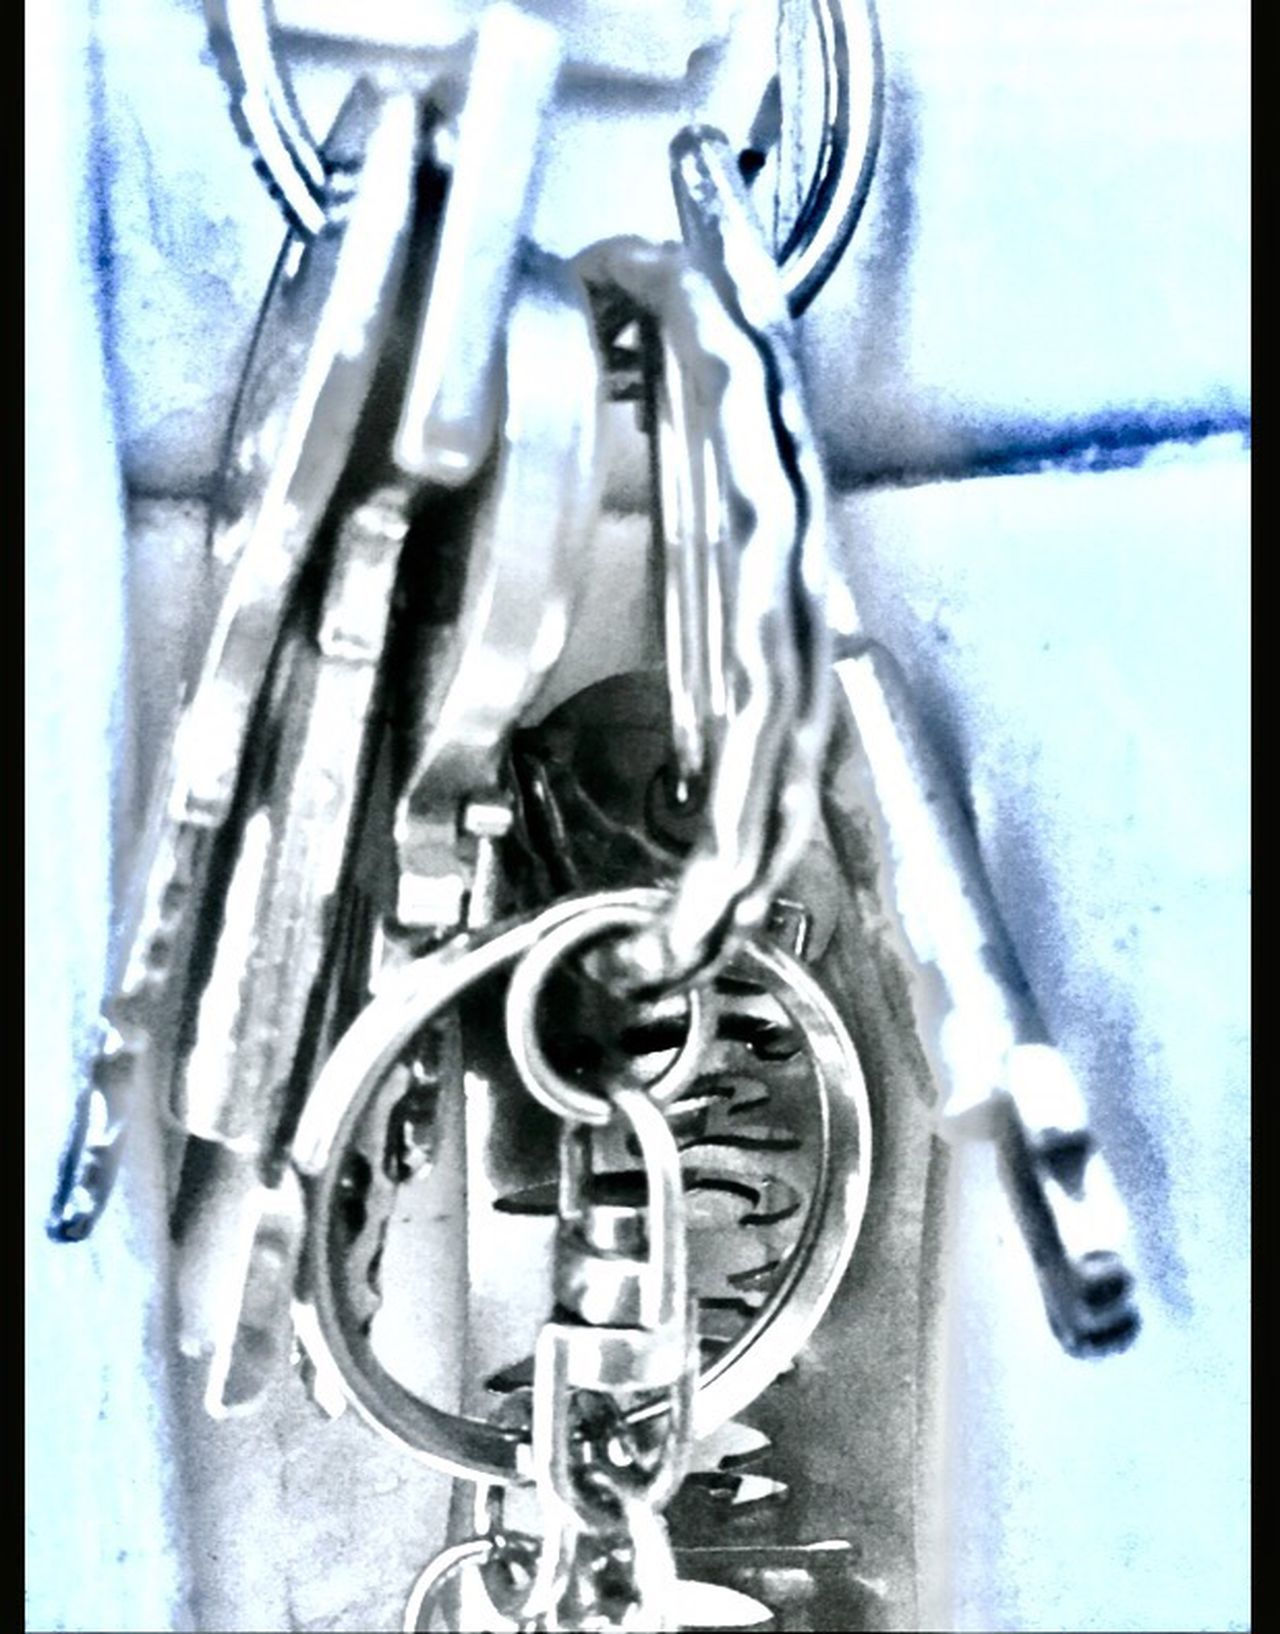 Metal No People Hanging Close-up Day Outdoors Keys Photography Key Chain